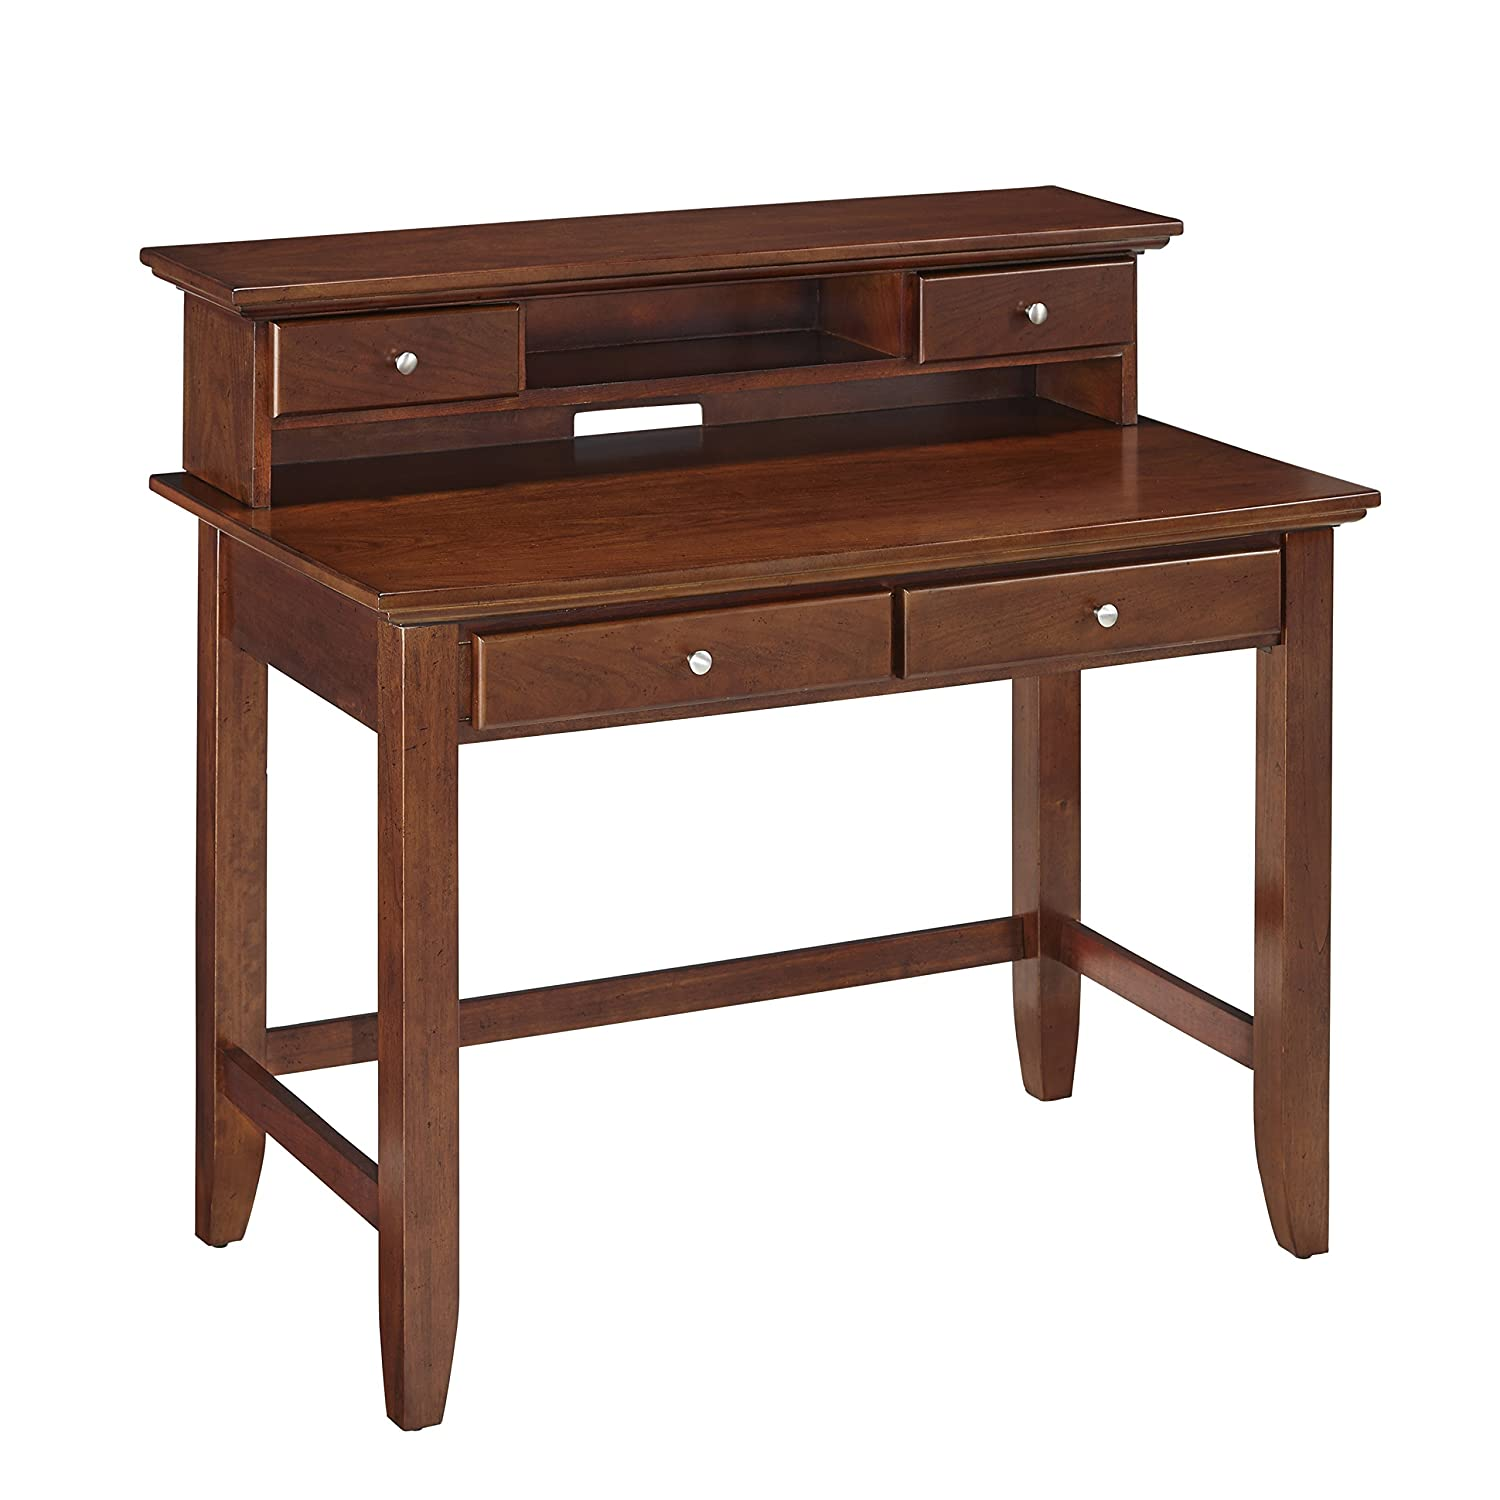 office desk styles. Amazon.com: Home Styles 5530-162 Naples Student Desk And Hutch, White Finish: Kitchen \u0026 Dining Office